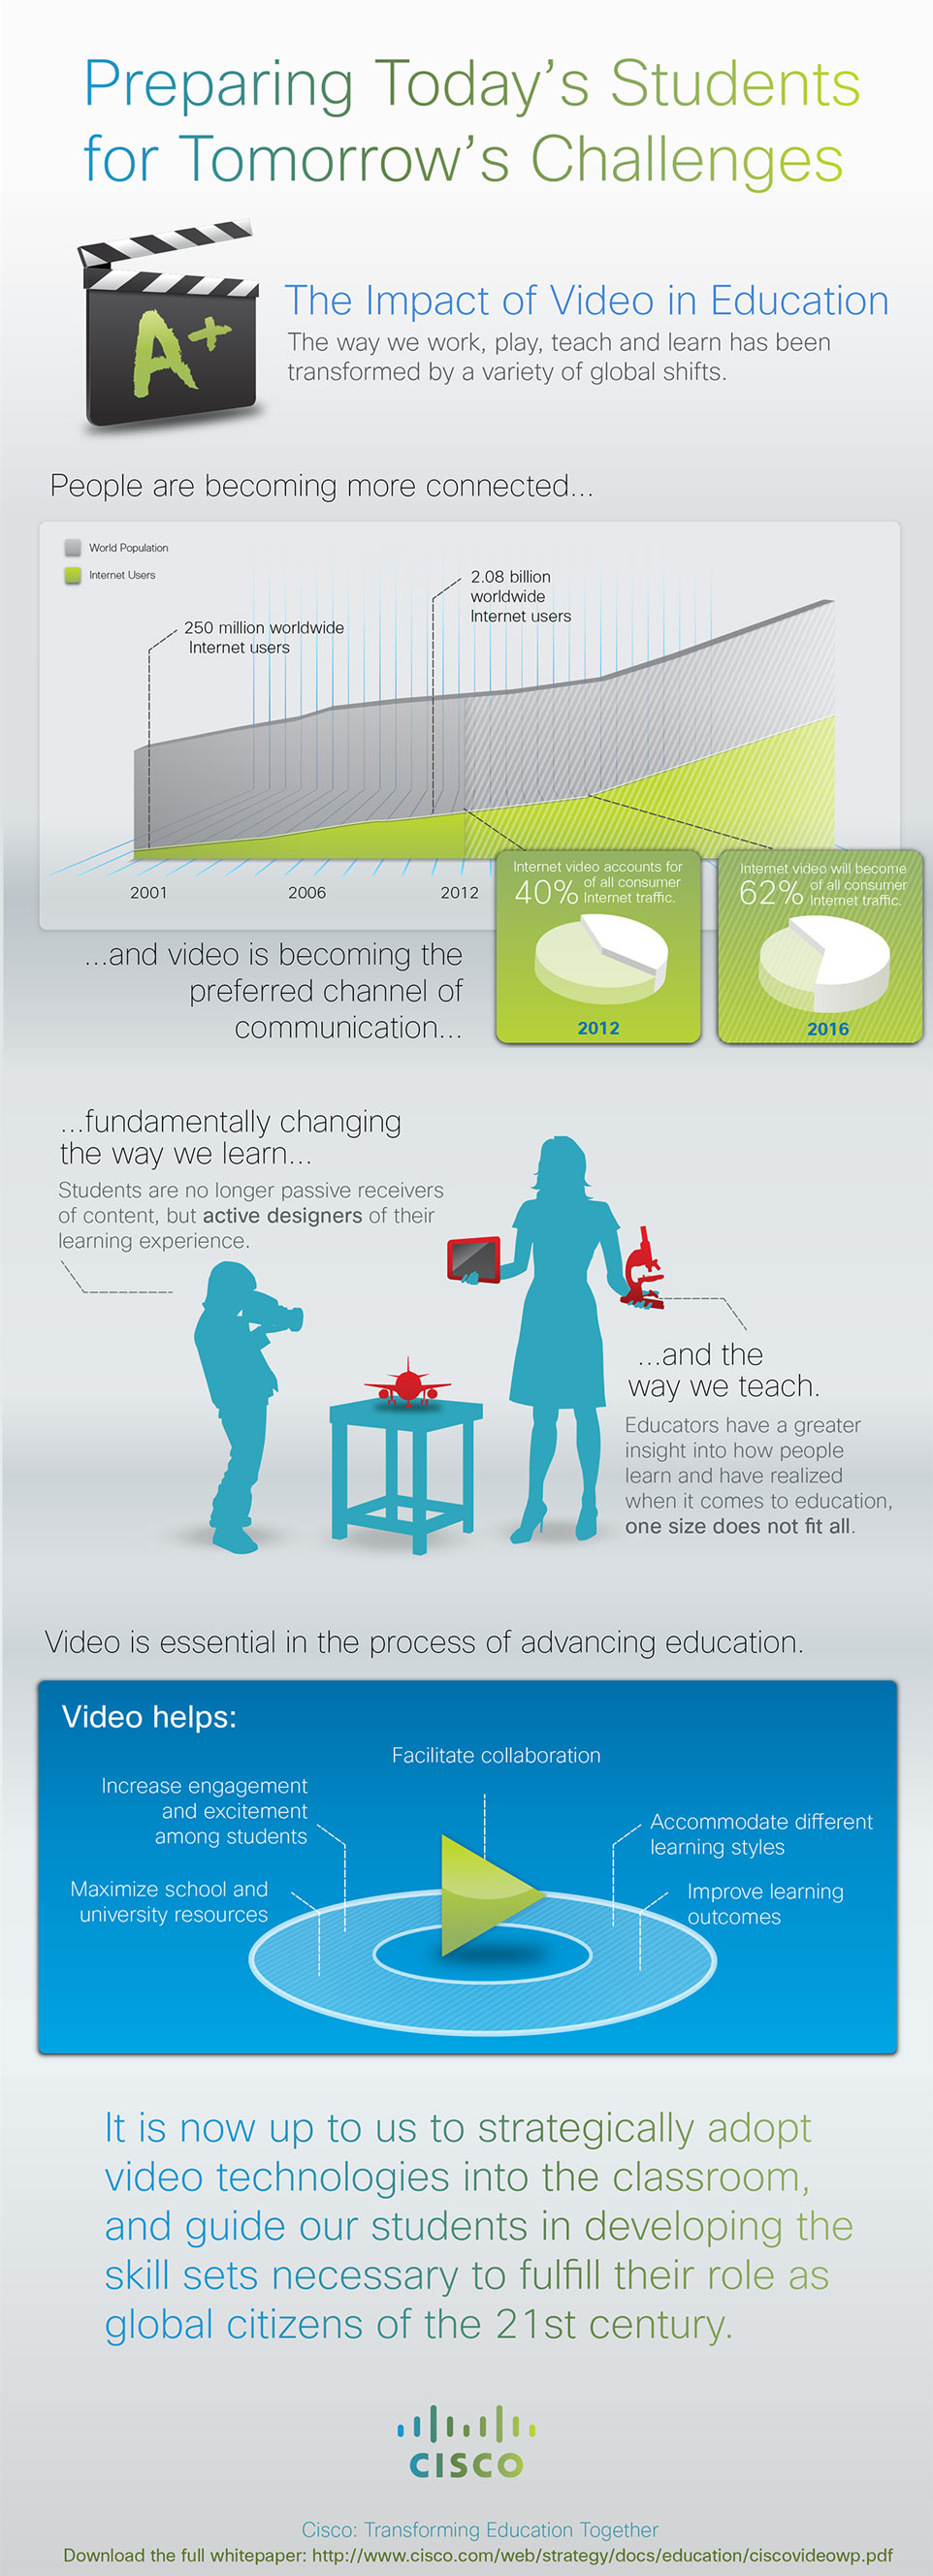 the-impact-of-video-in-education_506dd1421b91c